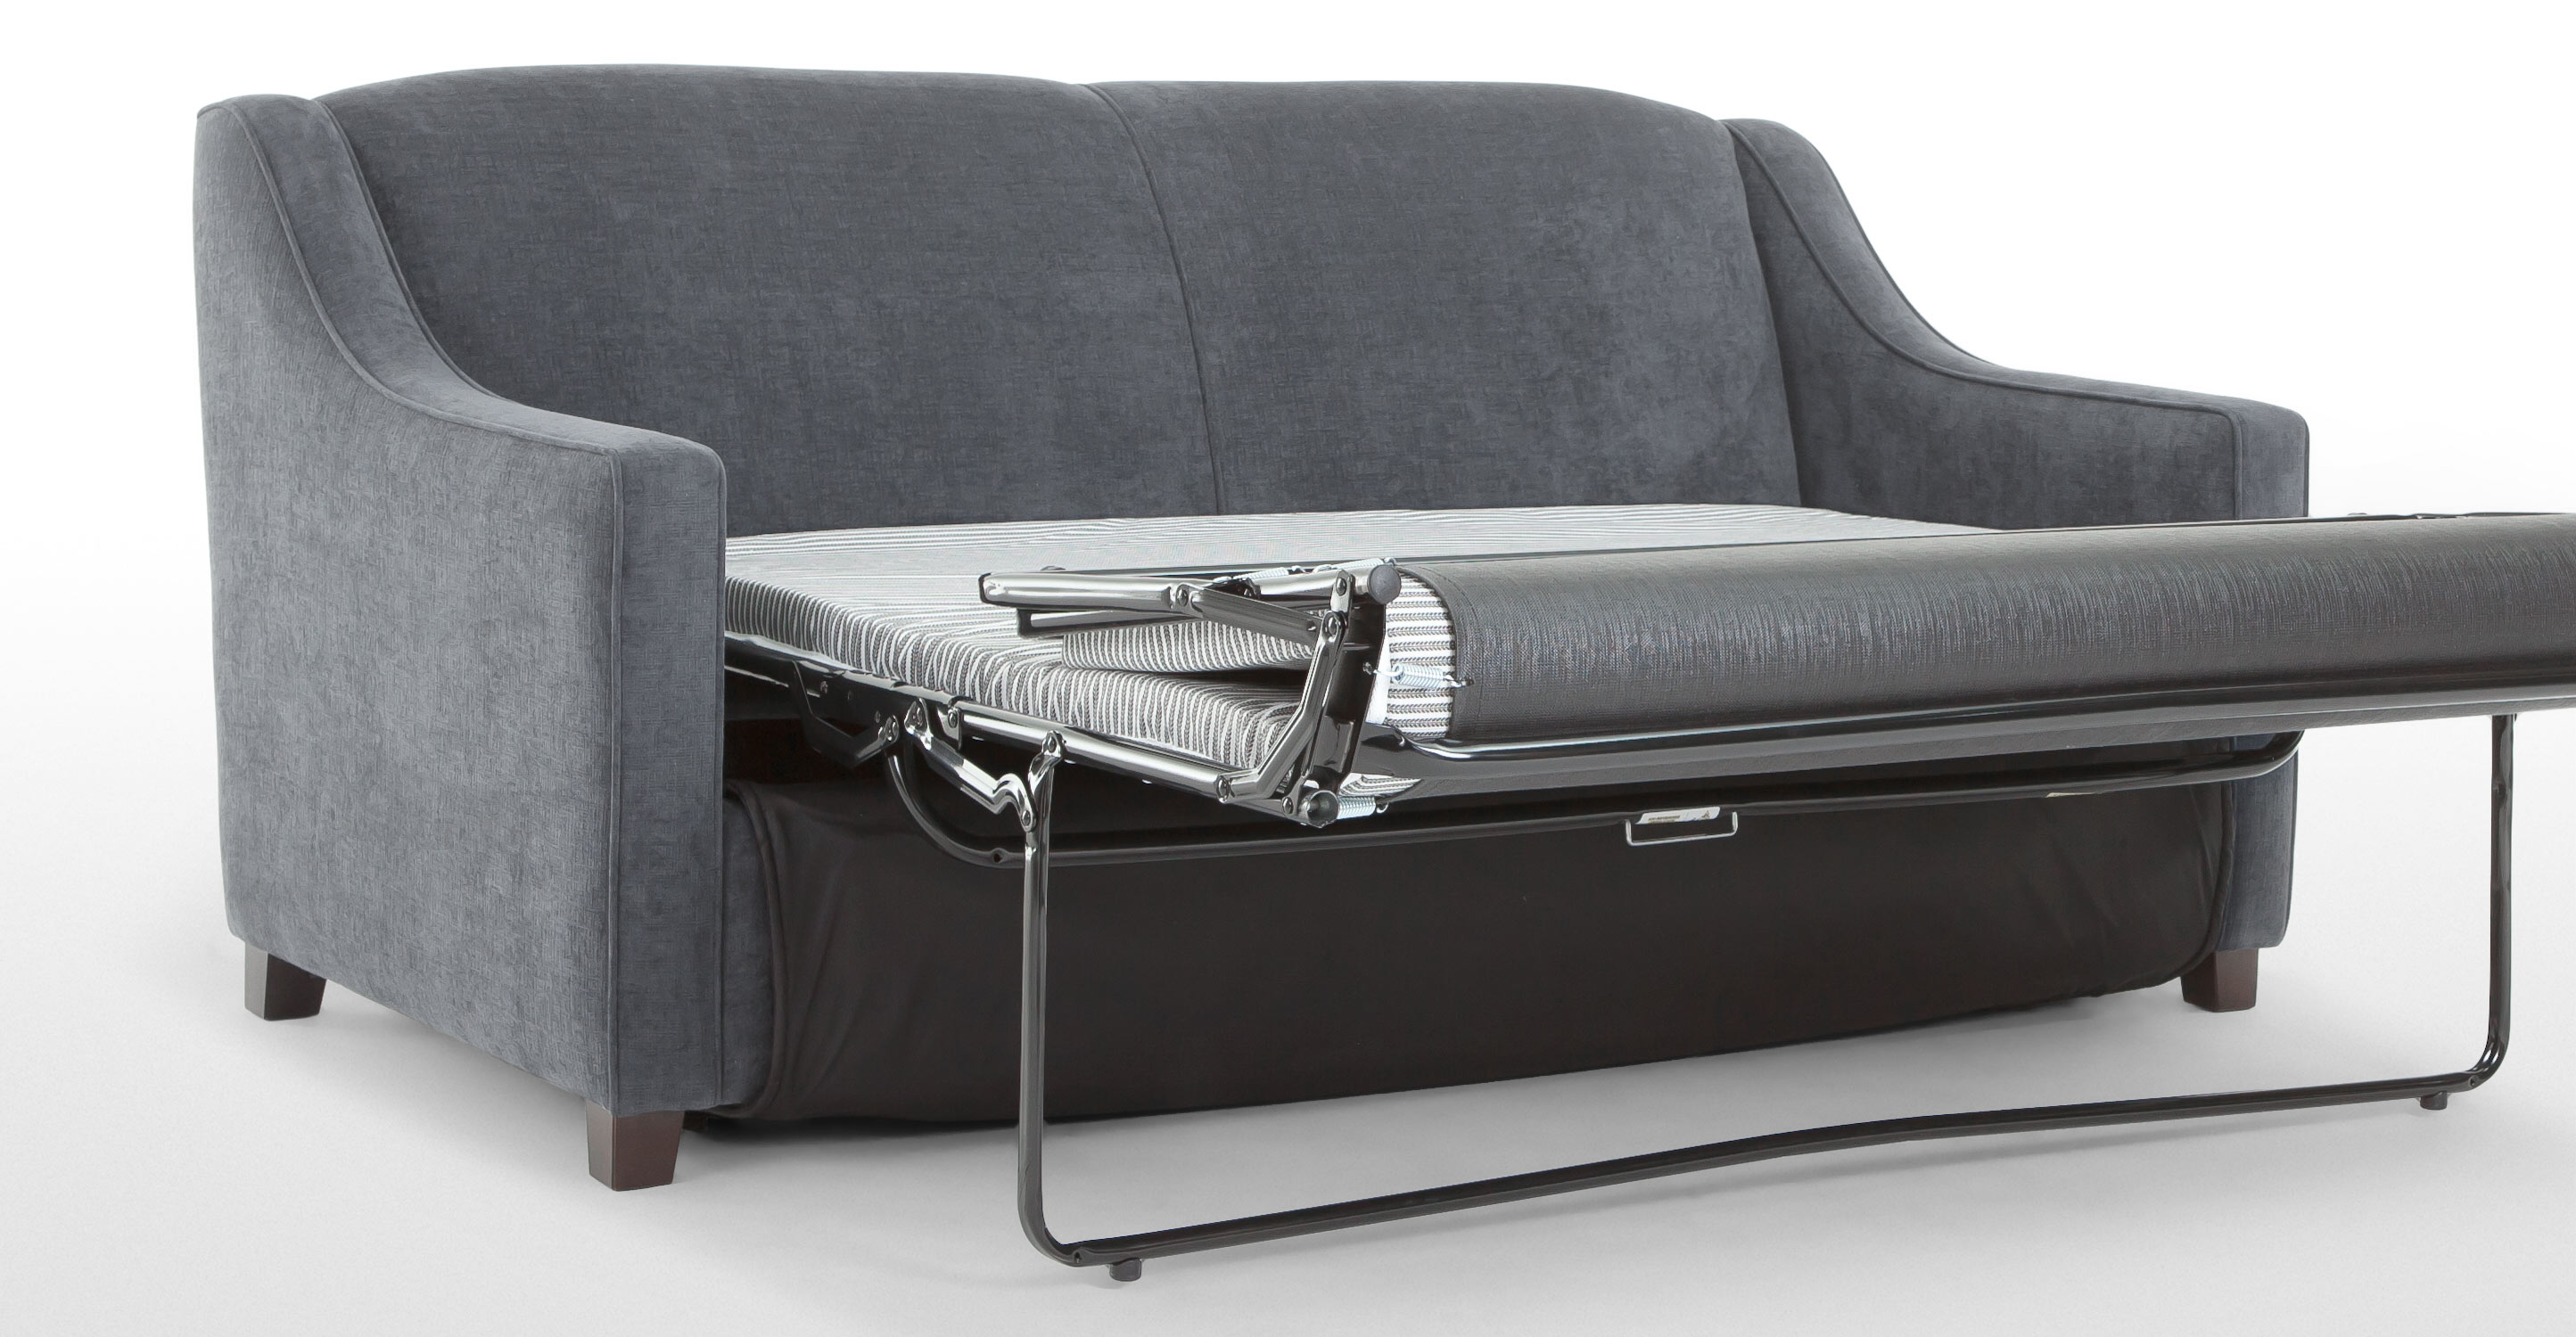 Halston Sofa Bed In Dusk Grey